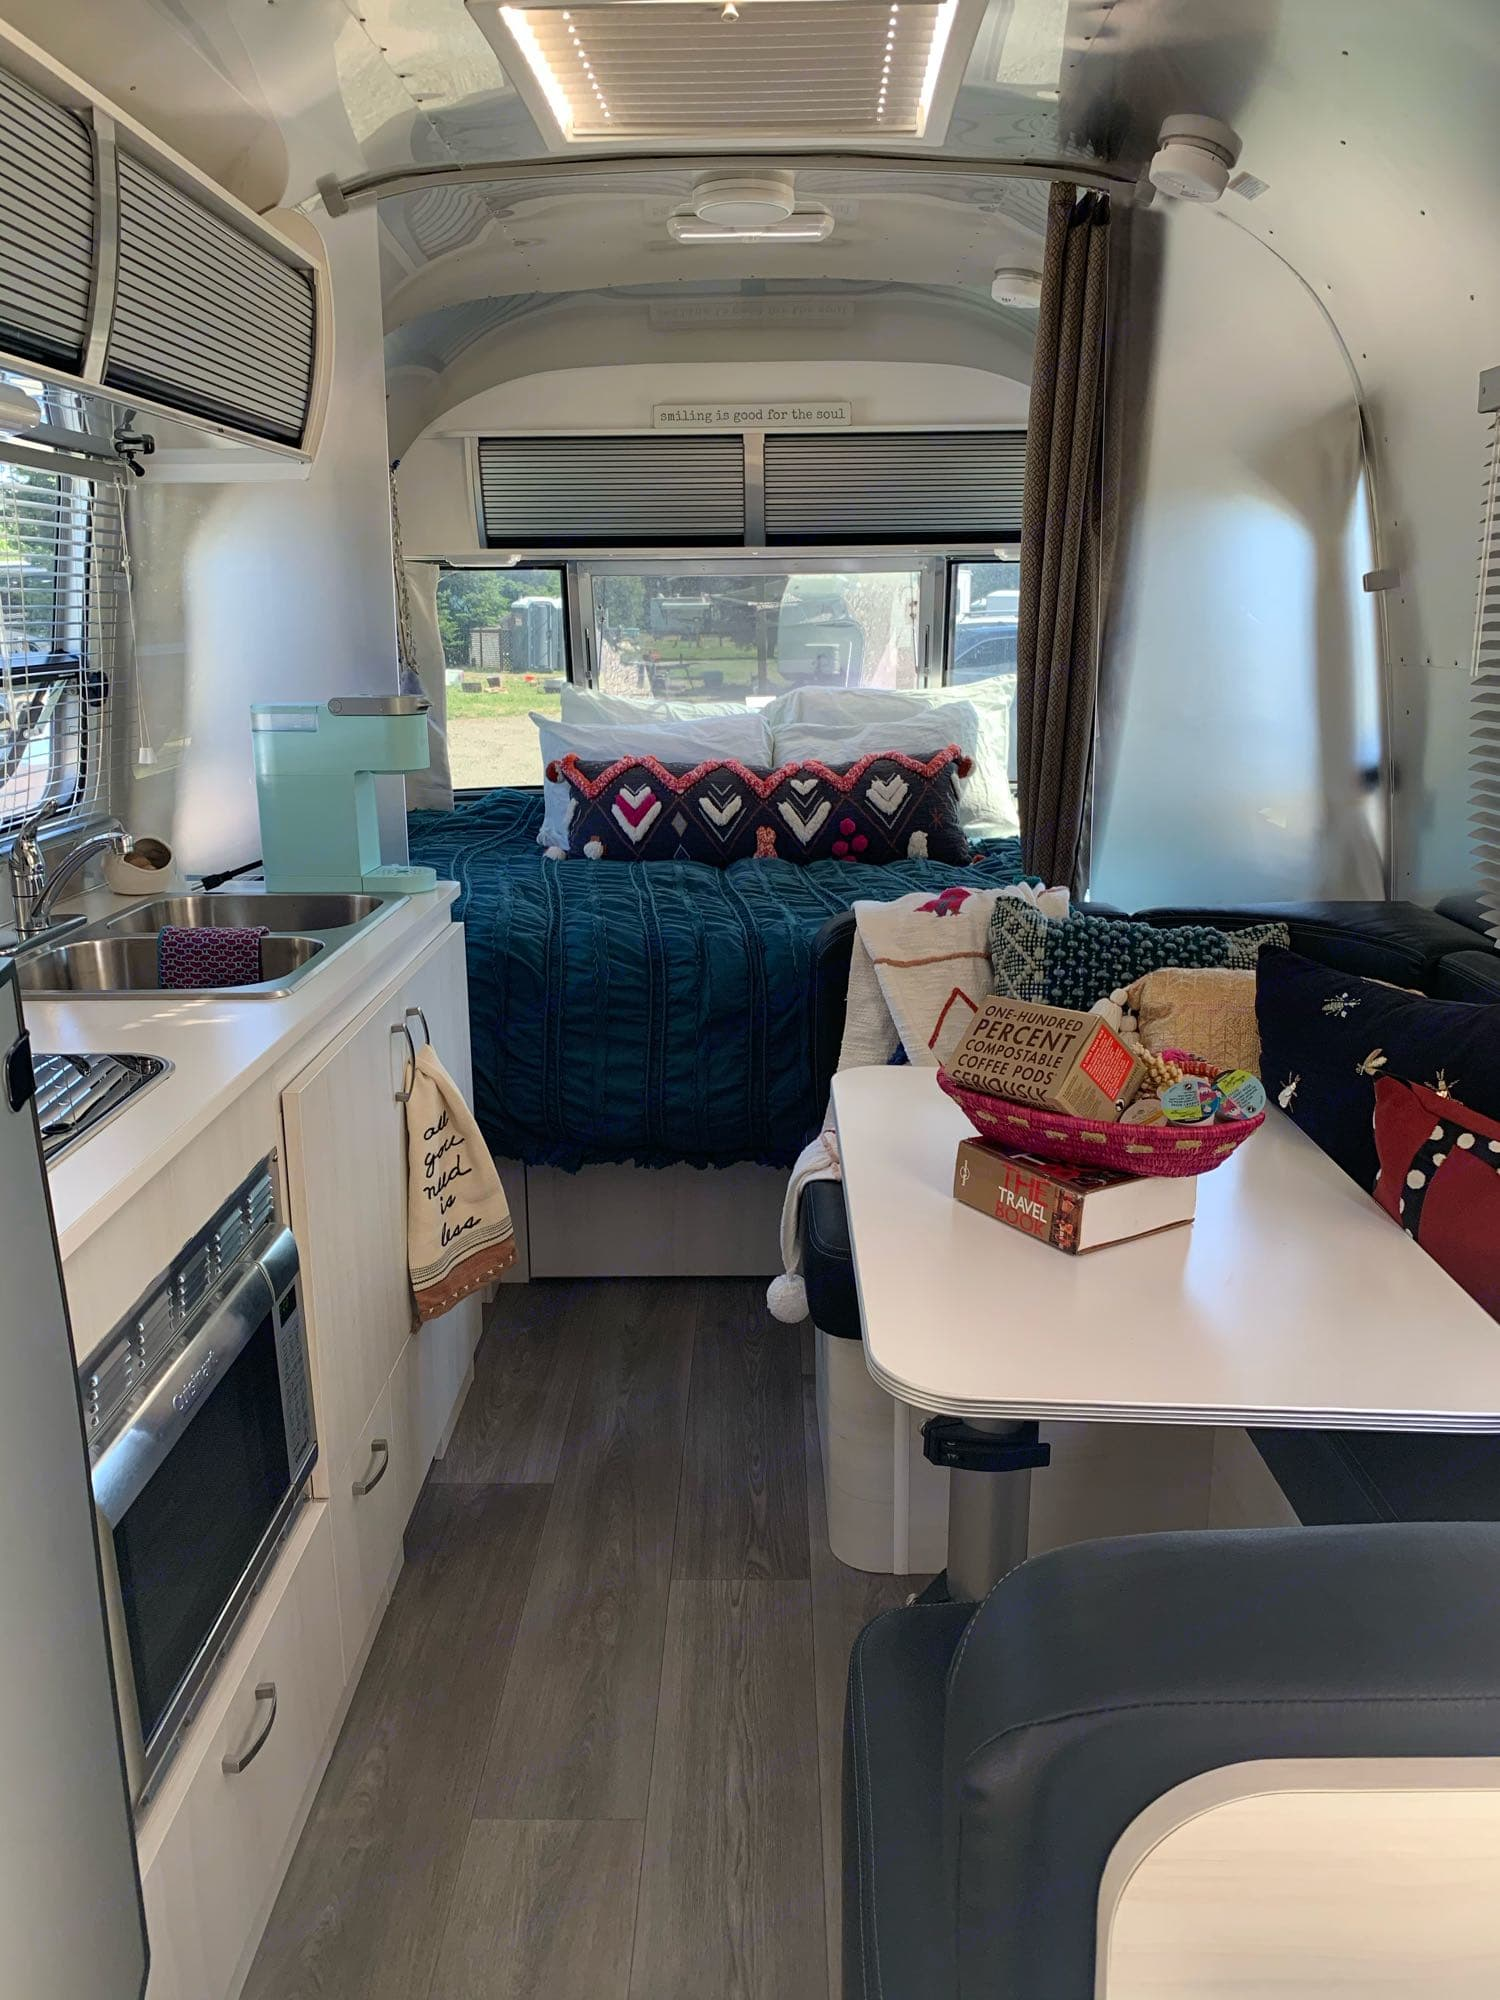 Inside you'll feel right at home :). Airstream Sport 2019